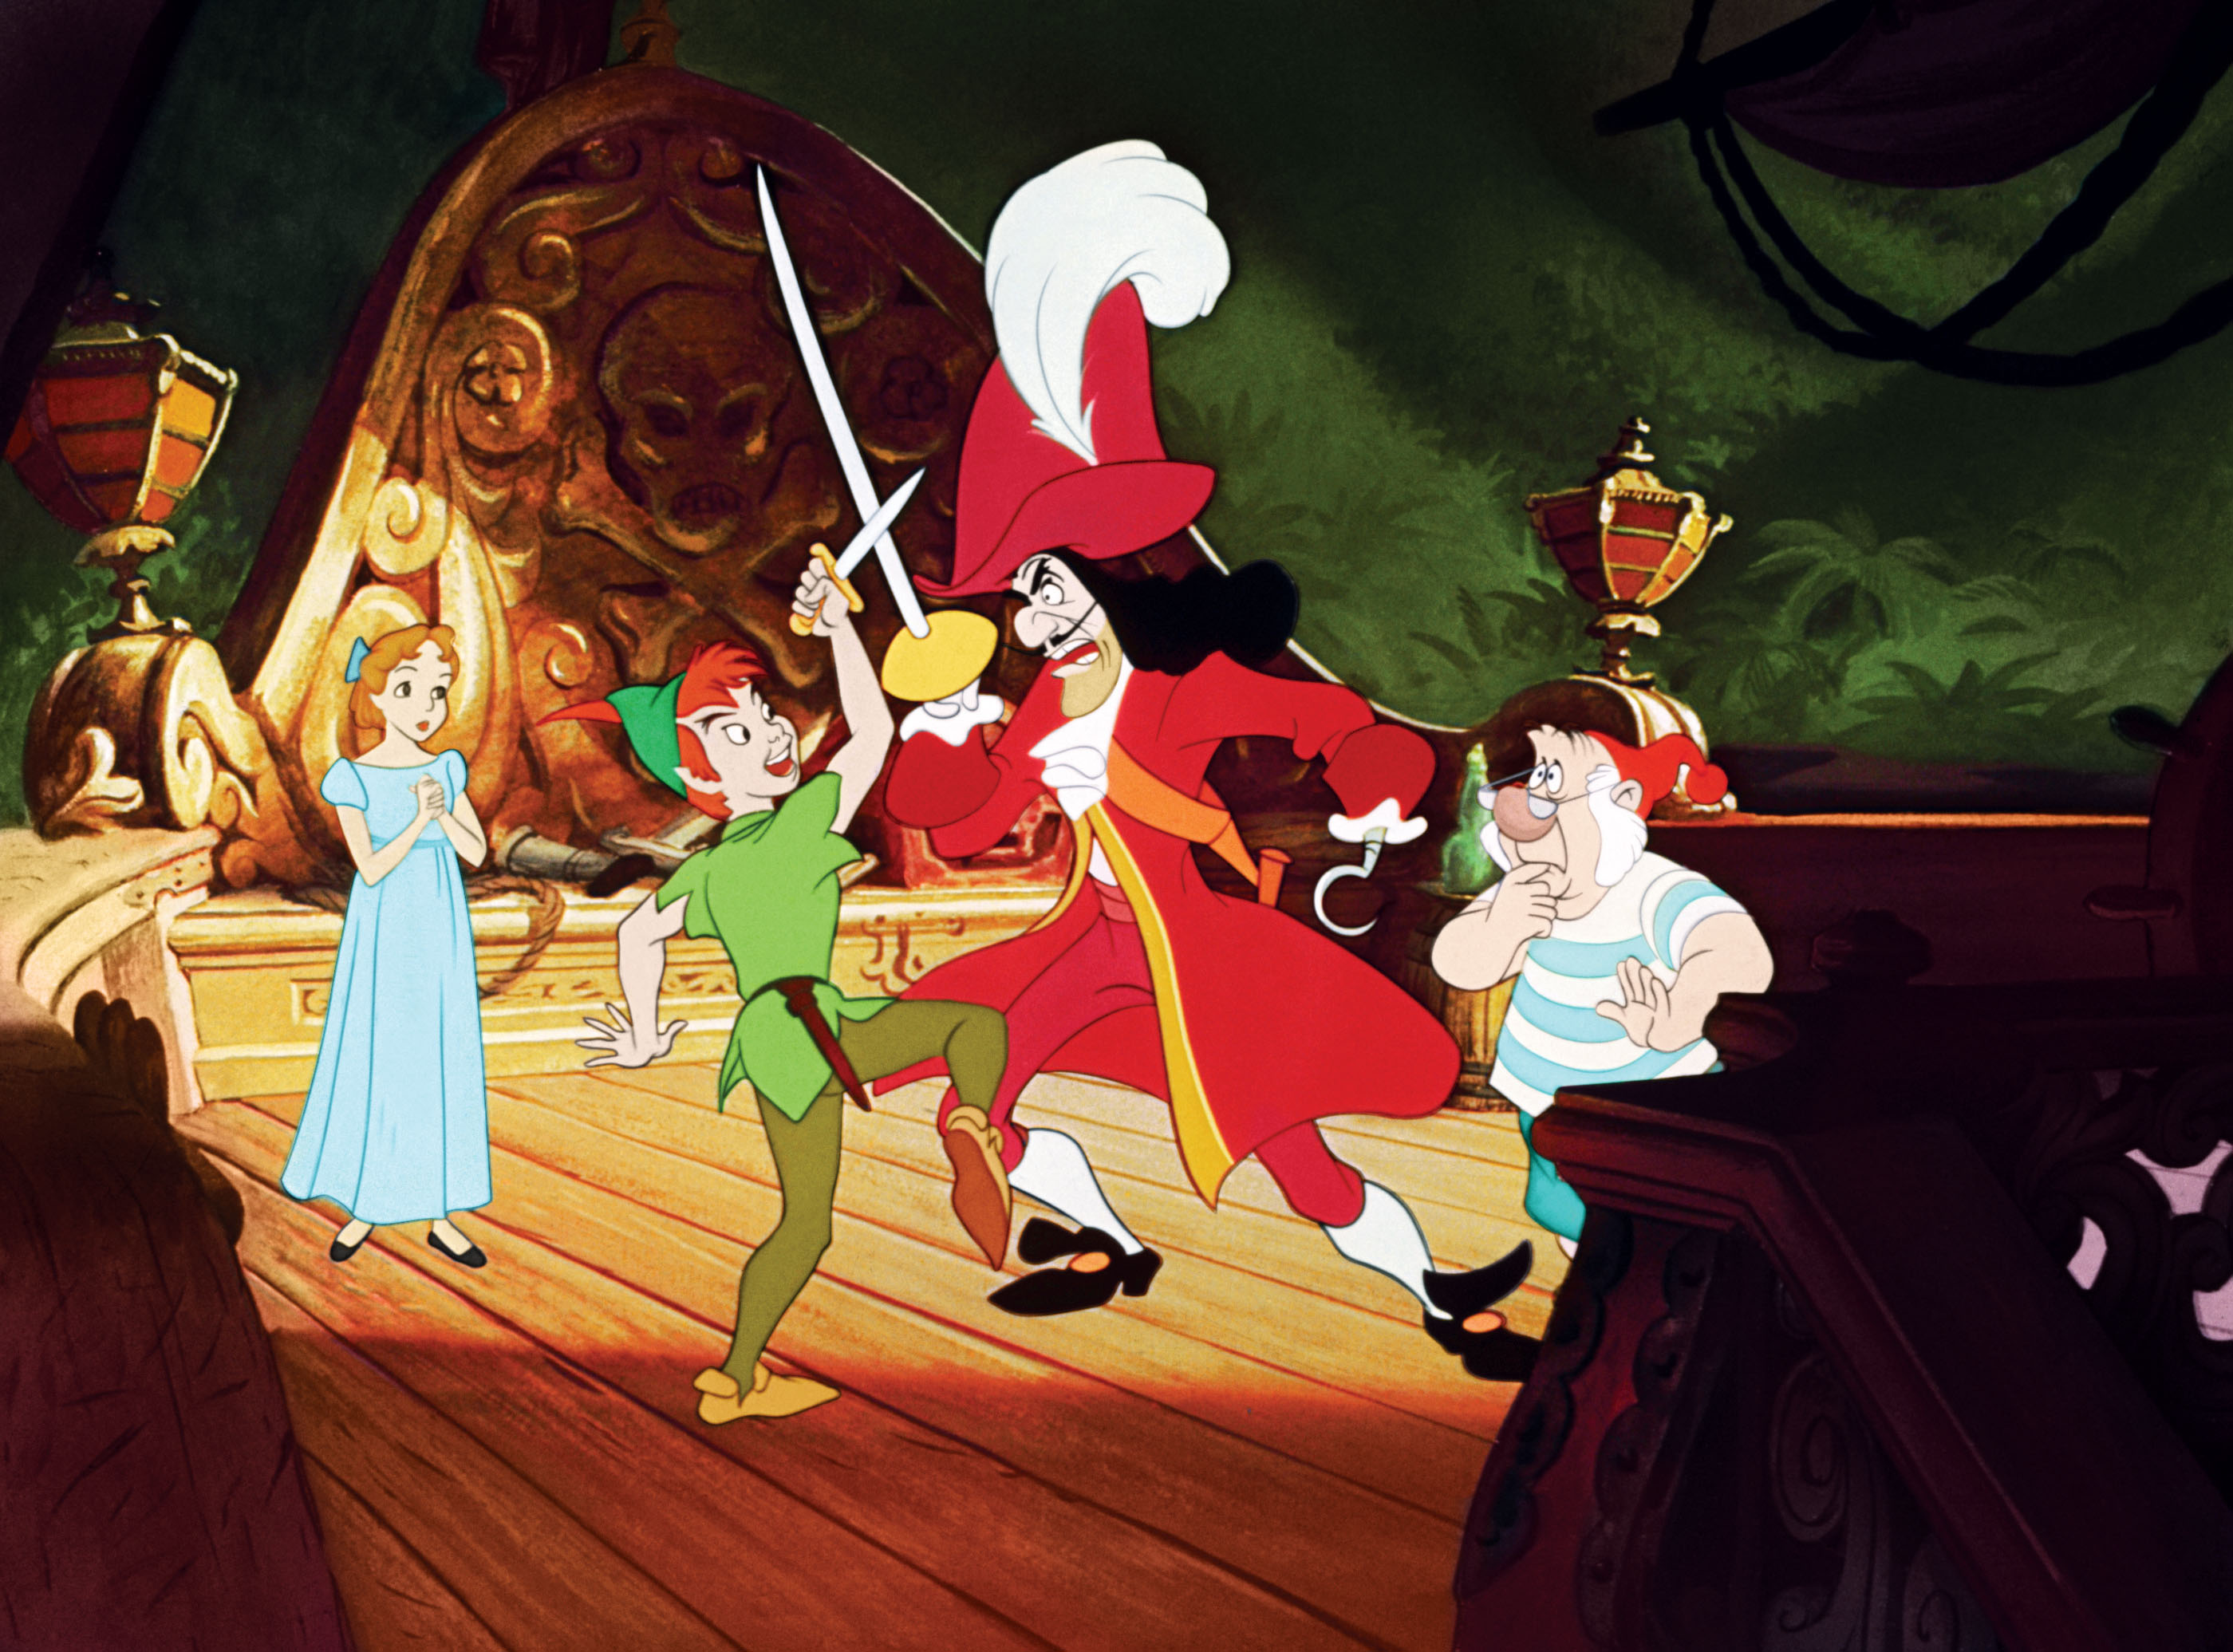 Peter Pan was really Disney's first foray into action and fantasy.  It began with Alice in Wonderland two years...